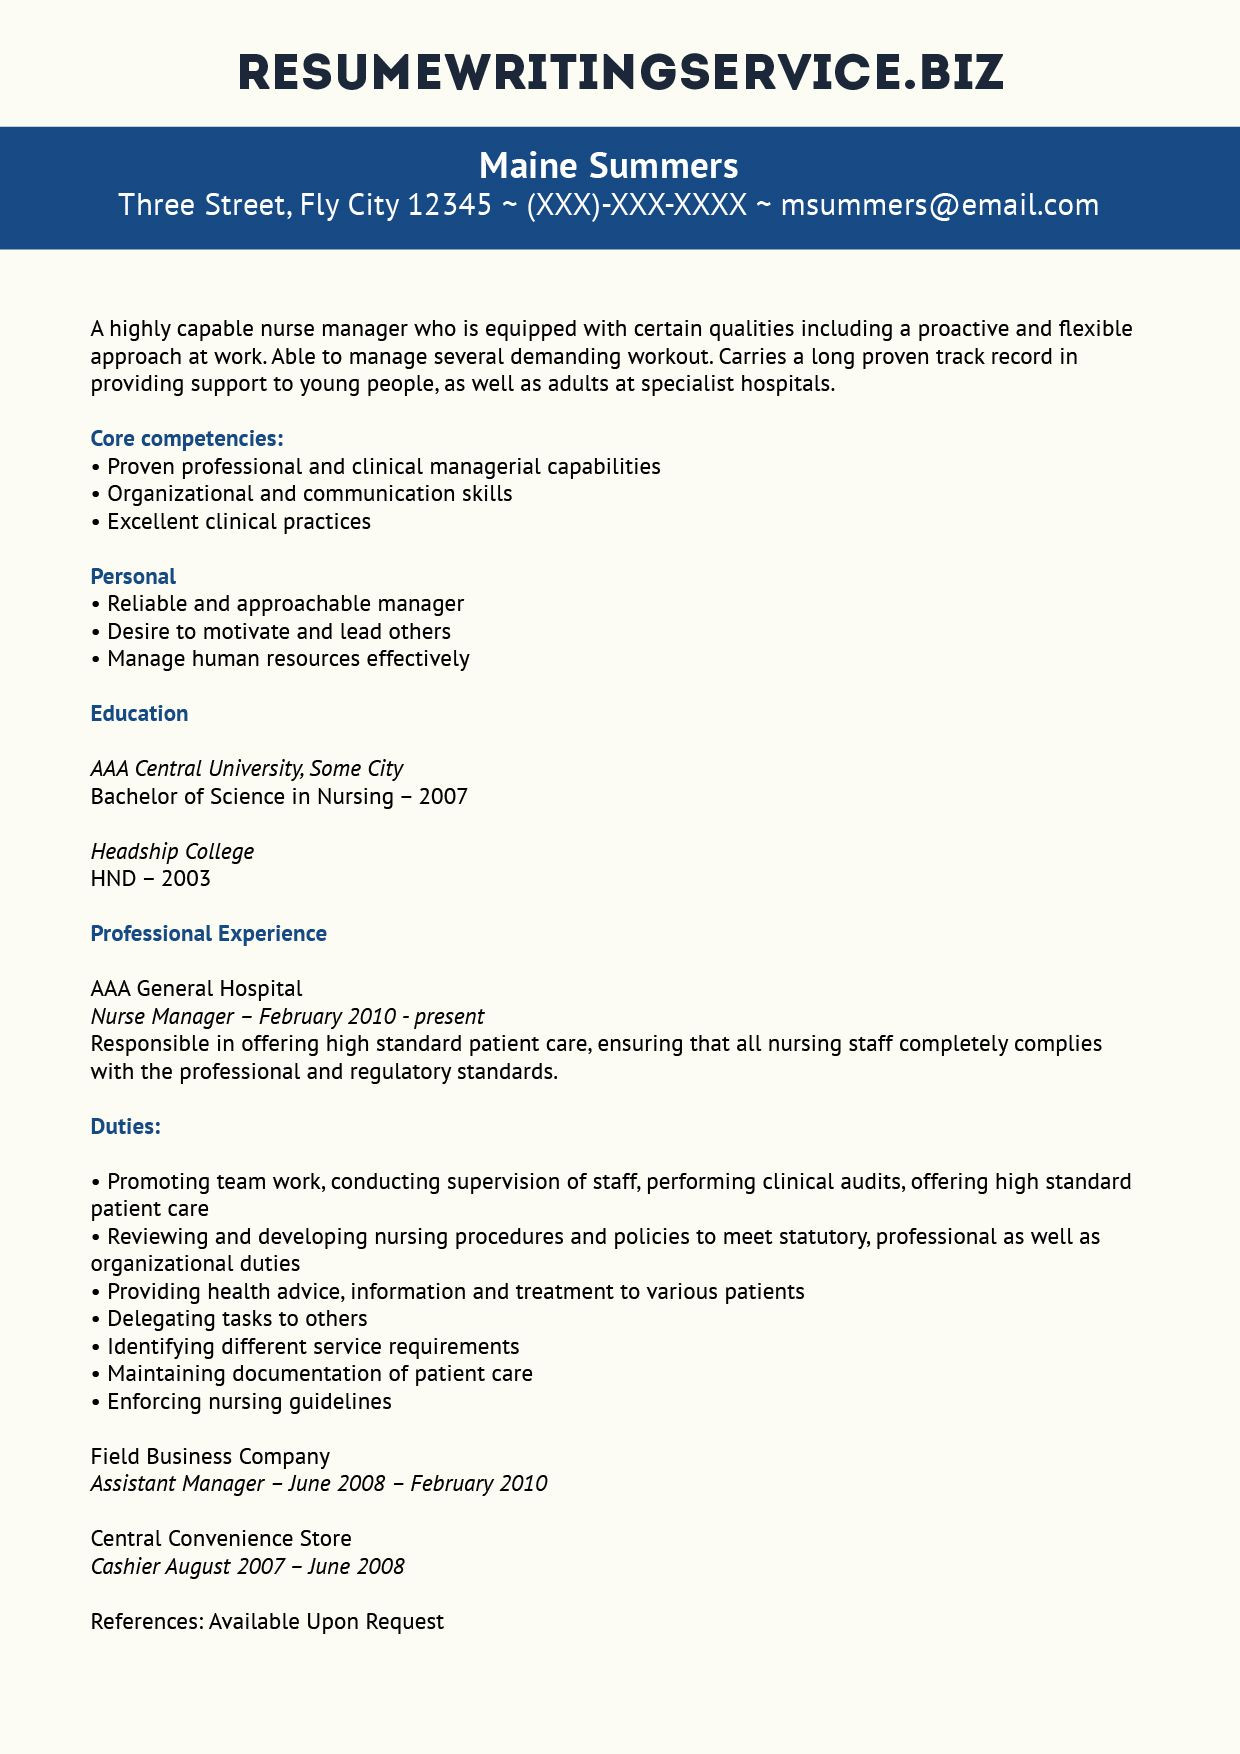 Here Is A Nice Example Of A Nurse Manager Resume If You Want To